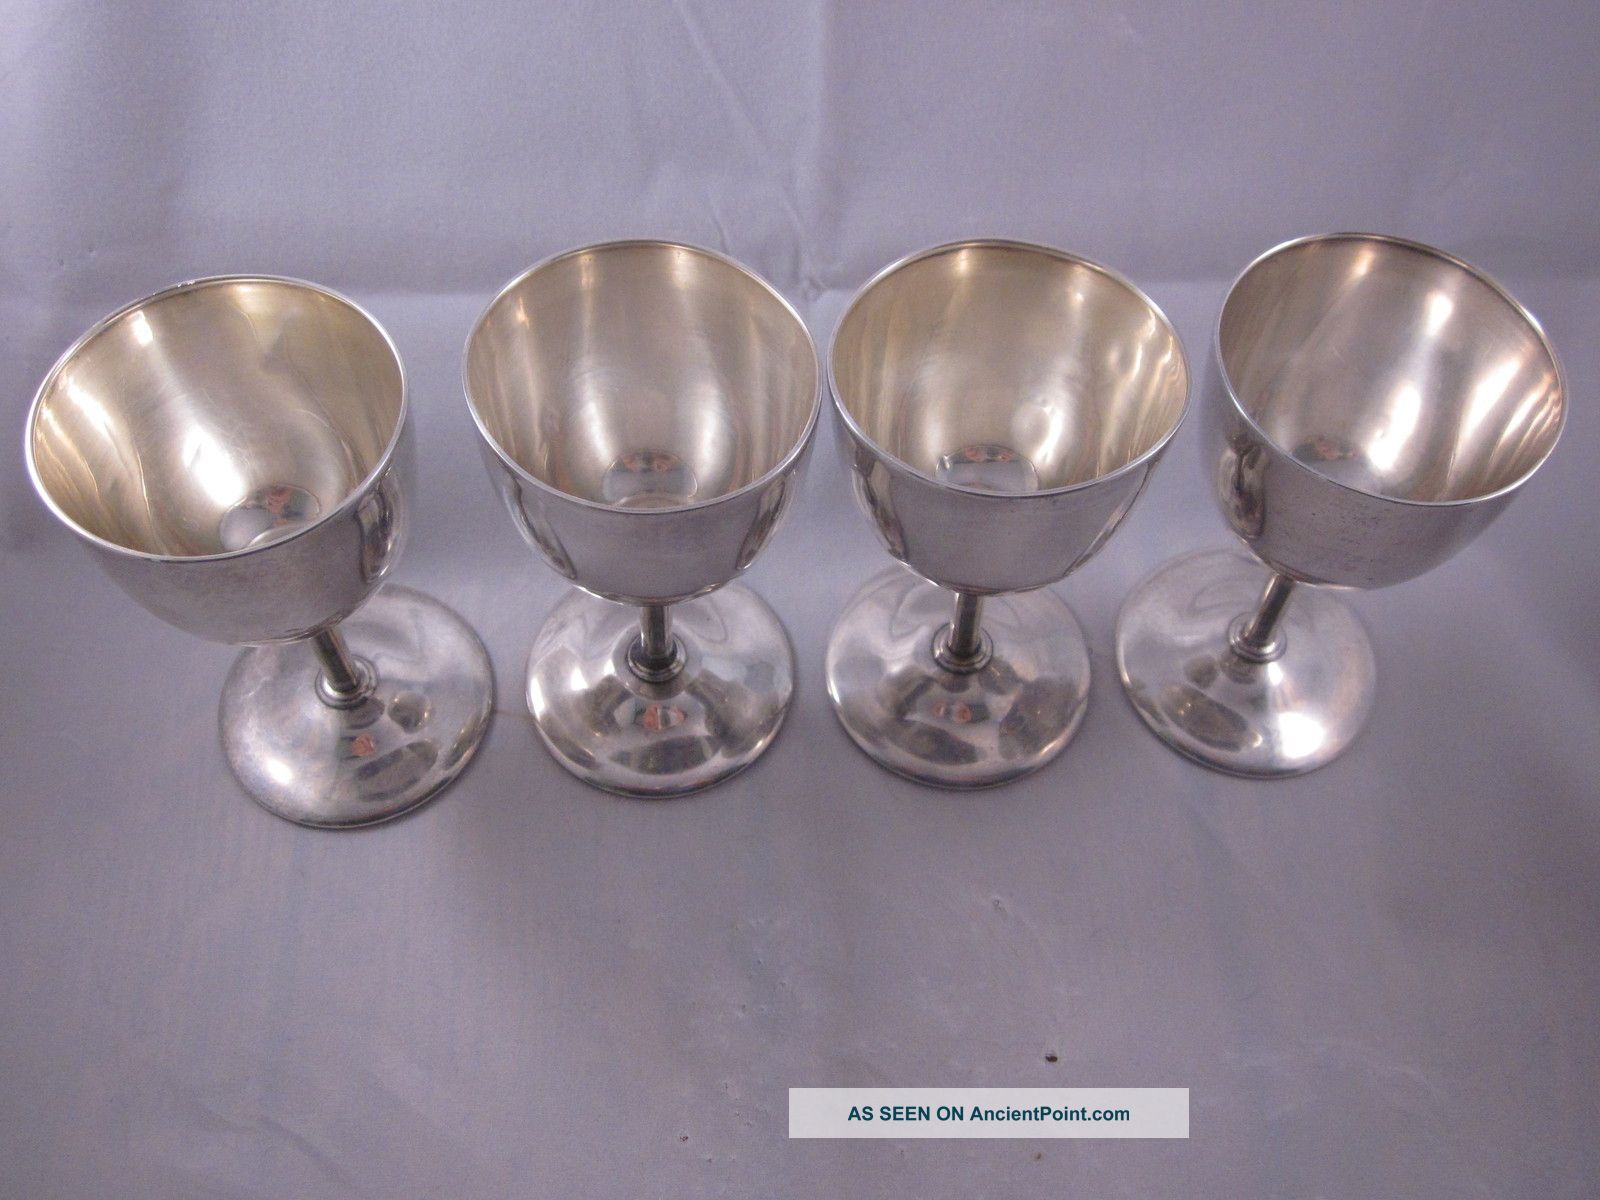 Vintage Goblets Cups Sterling Silver Set Of 4 Cordials Sherry Wh&co 1903? Cups & Goblets photo